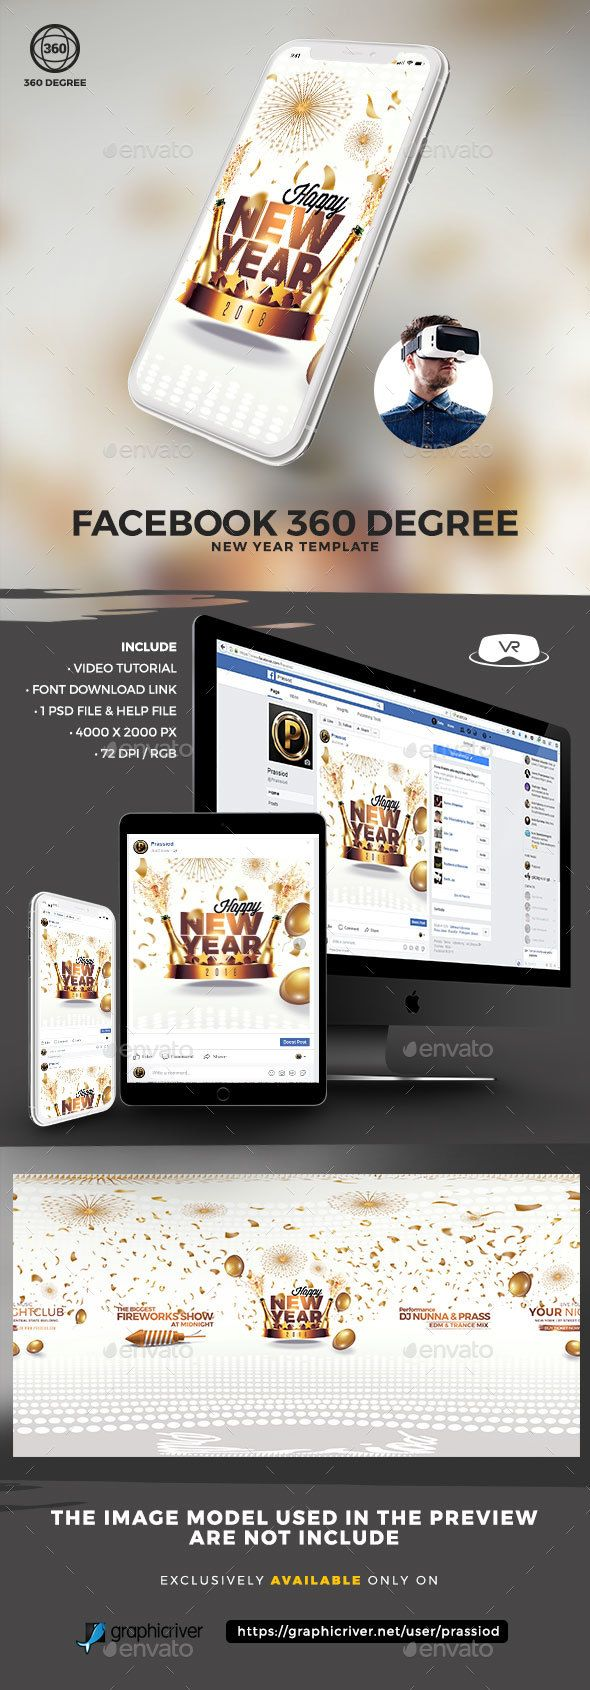 Facebook 360 Degree New Year Template Templates Free Website Templates Videos Tutorial